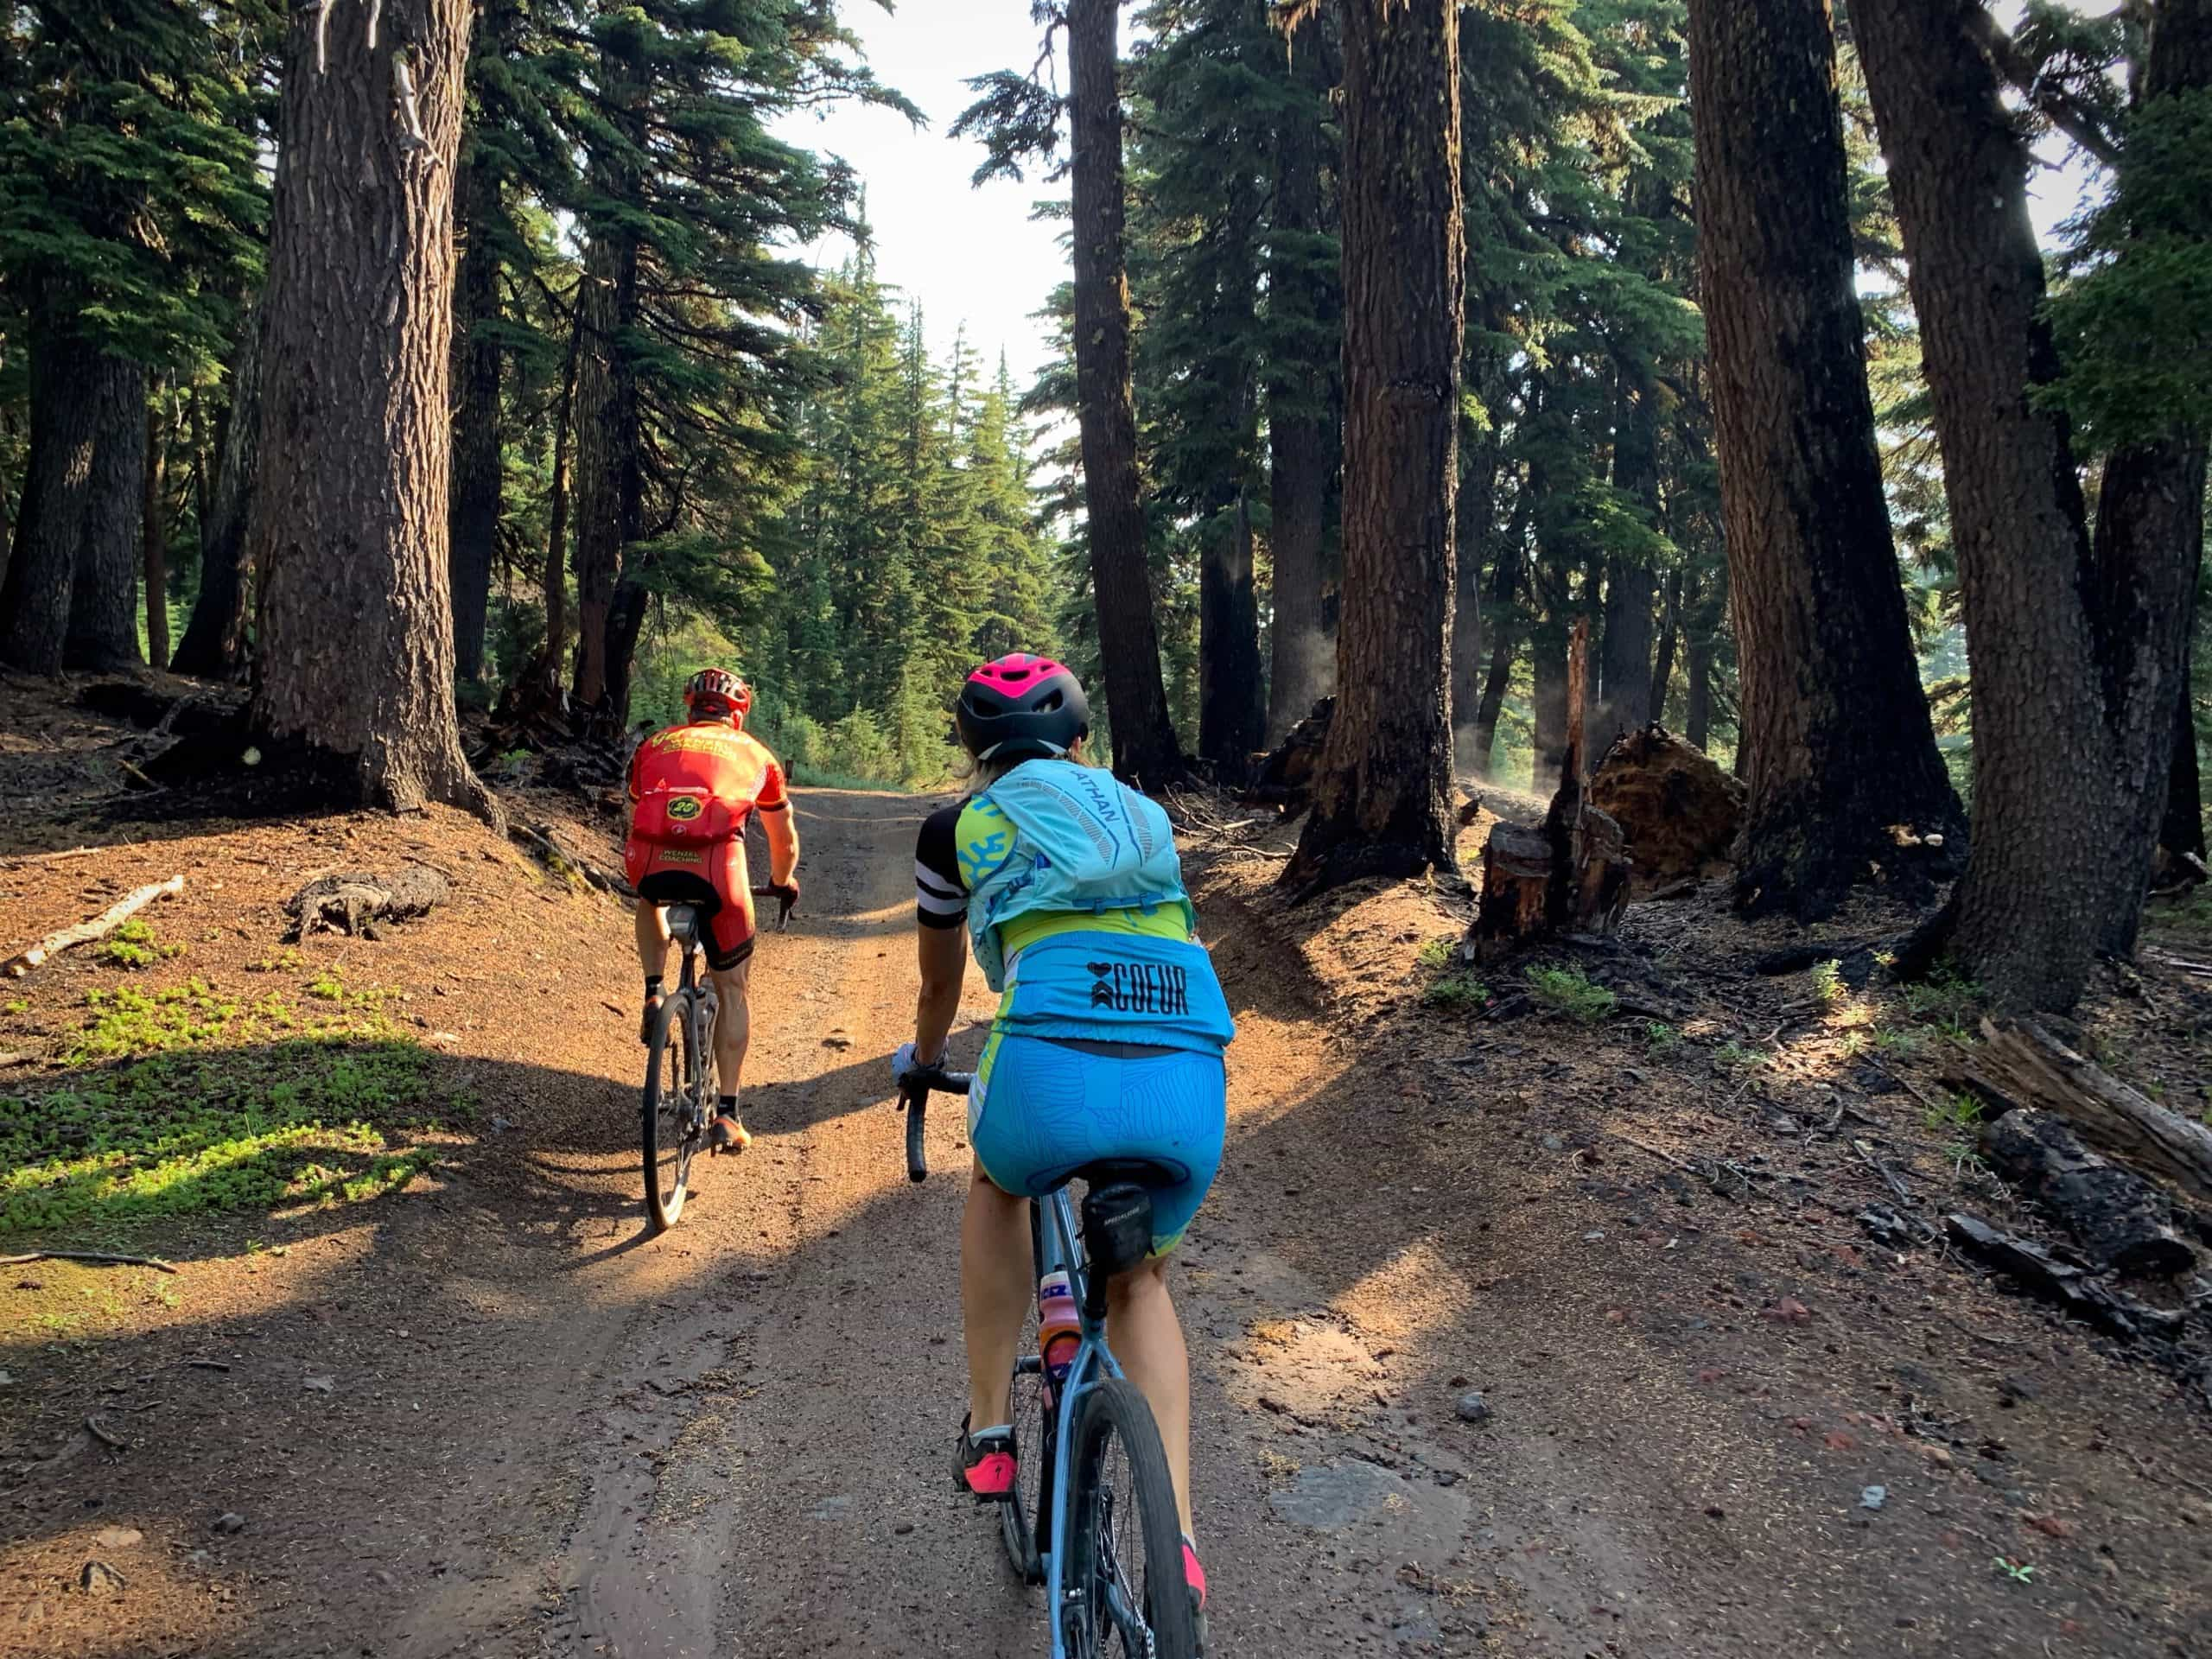 Gravel cyclists in the deep woods in the high country of the Deschutes National forest.